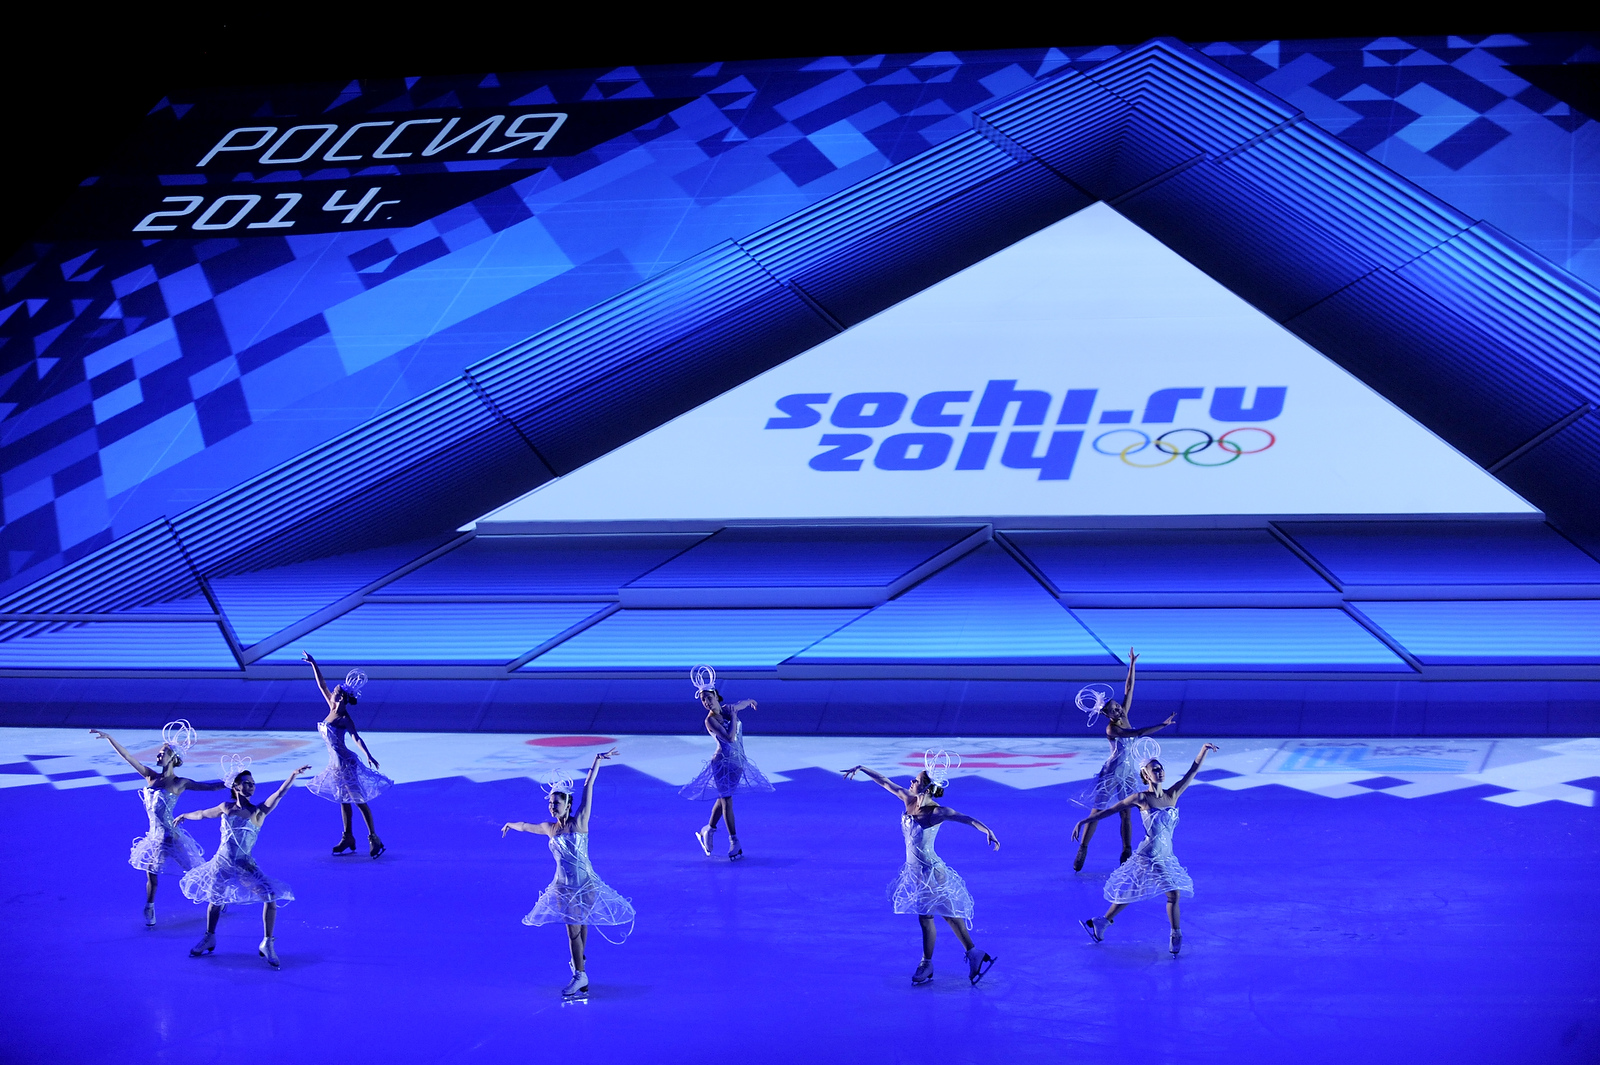 On July 4, 2007, Sochi was announced as the host city of the 2014 Winter Games.